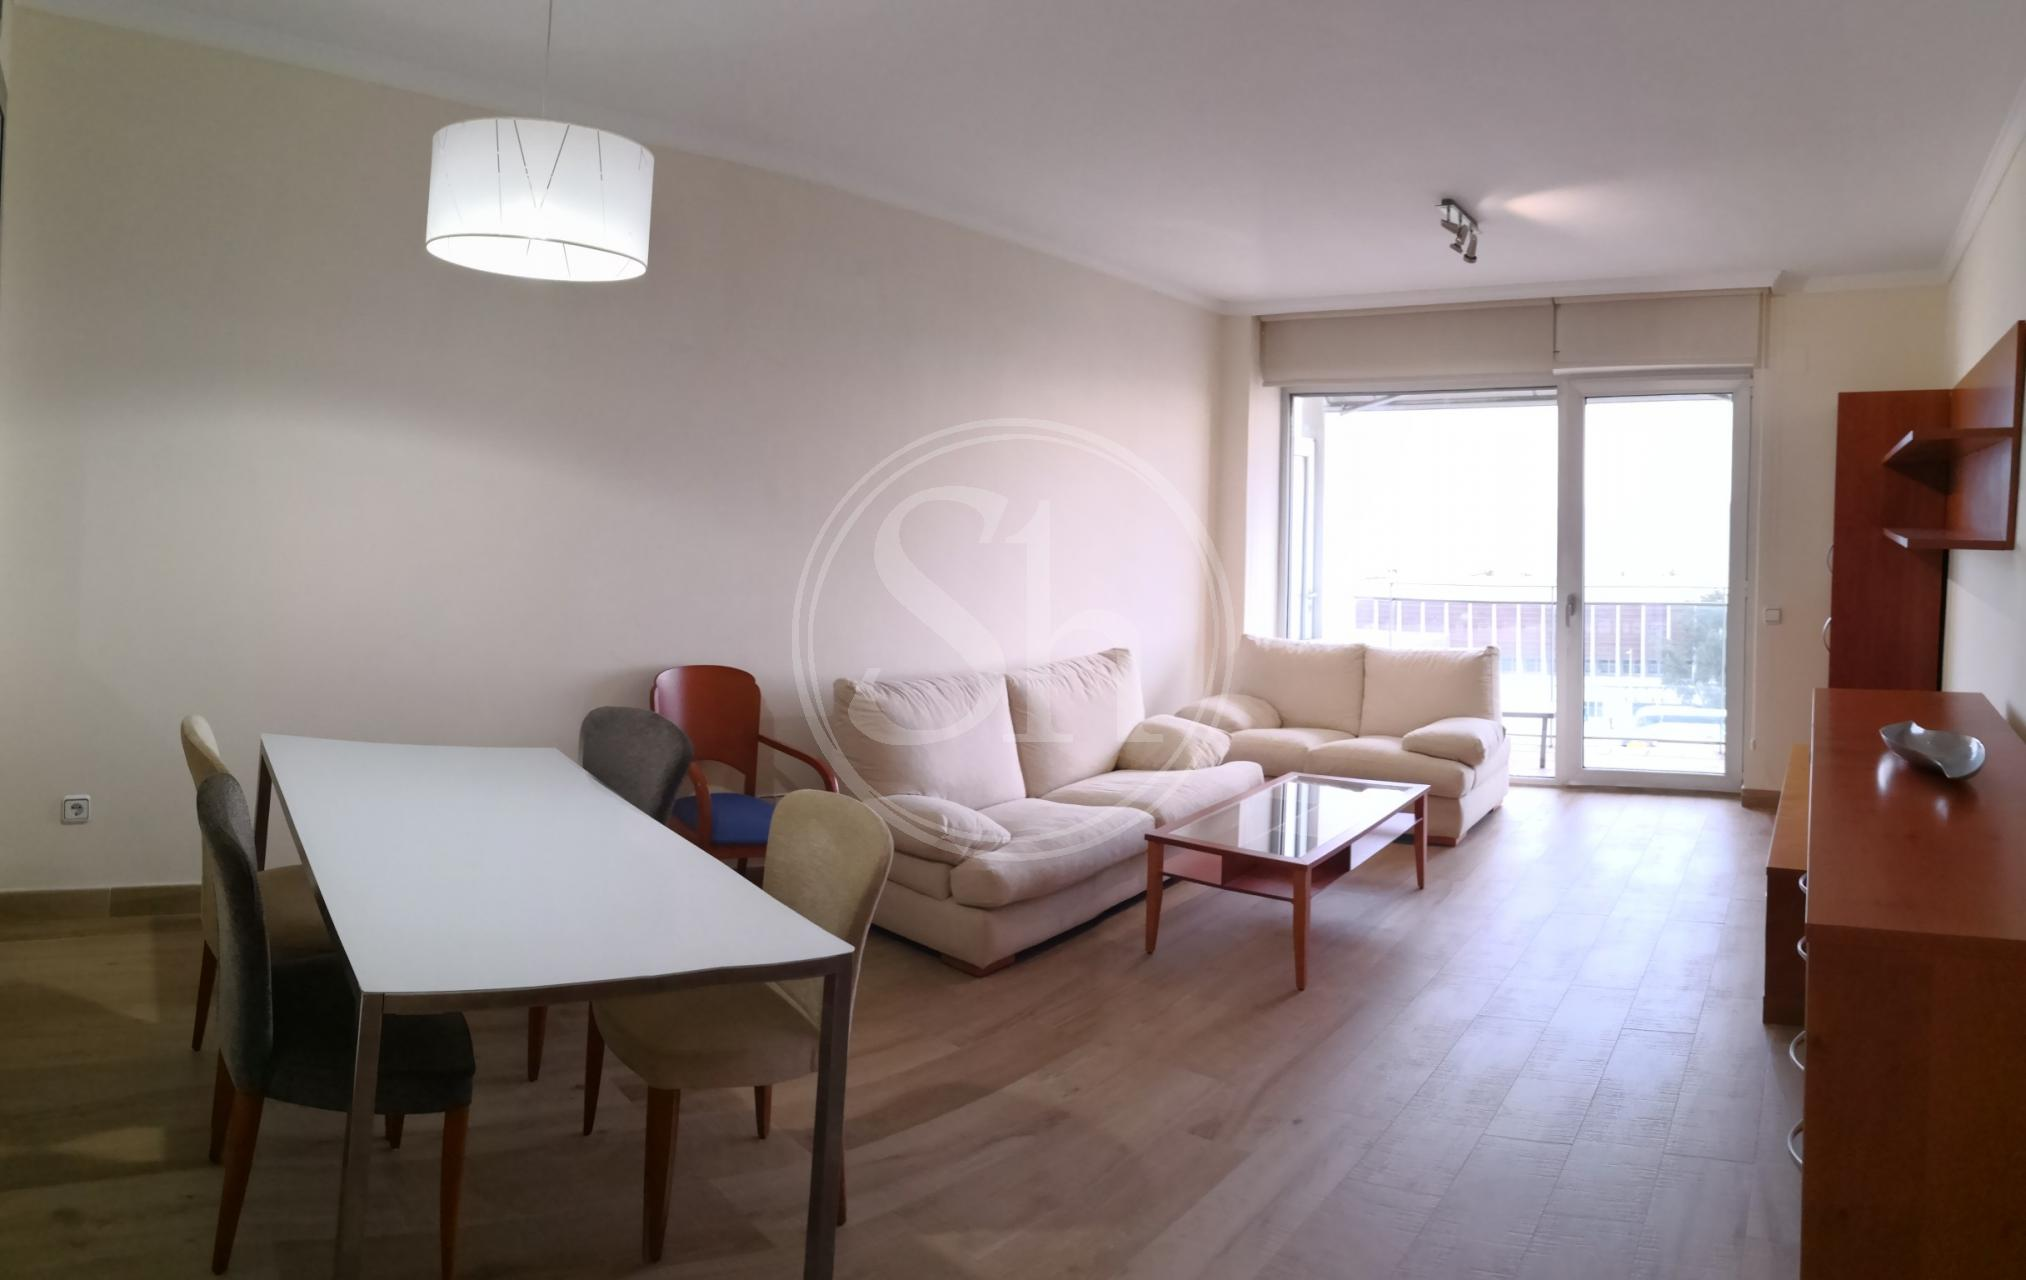 Apartment for Rent in Barcelona Pg De Garcia Fària - Espronceda